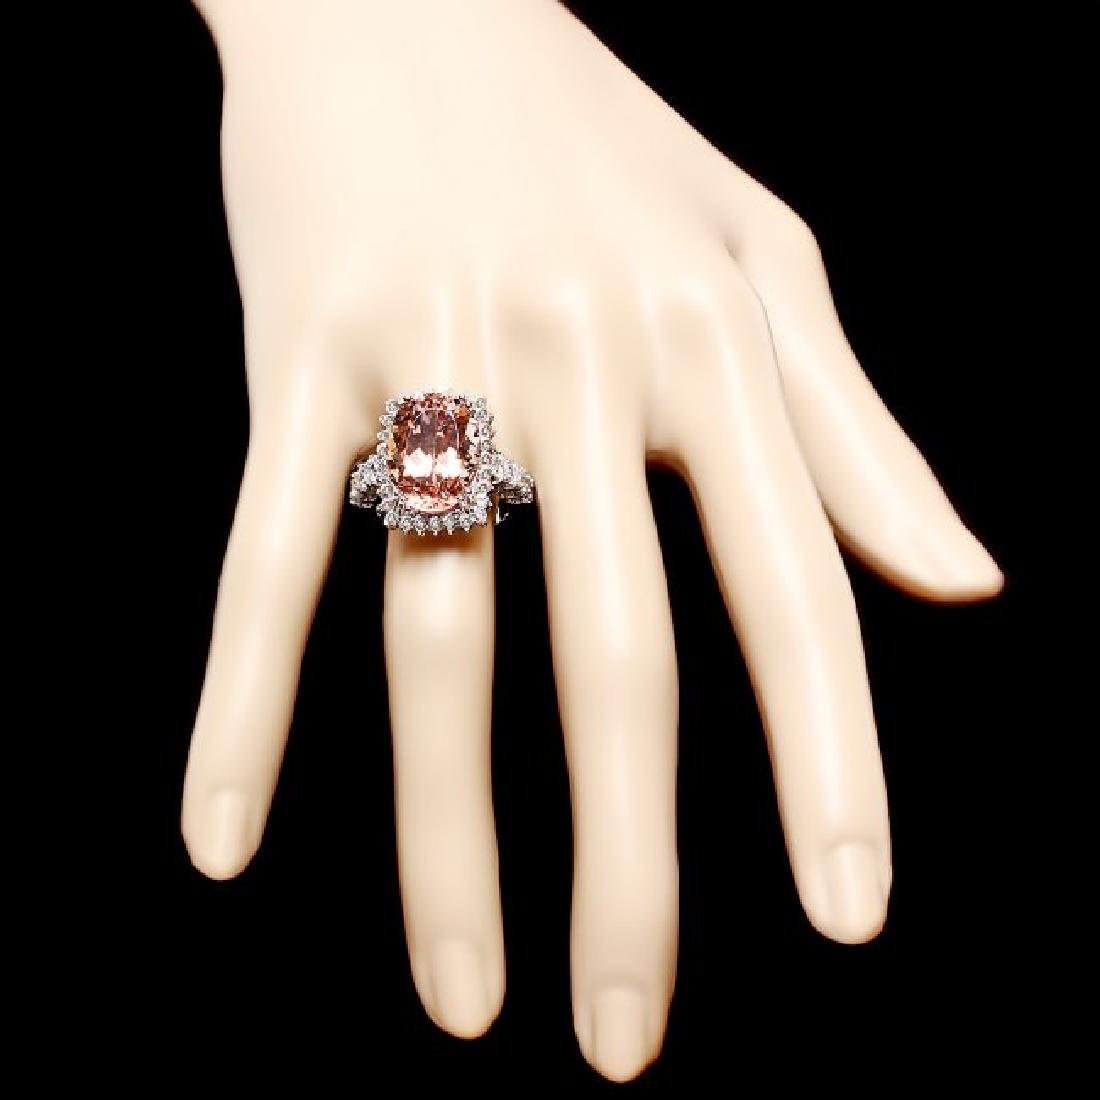 14k Gold 9.00ct Morganite 1.50ct Diamond Ring - 4